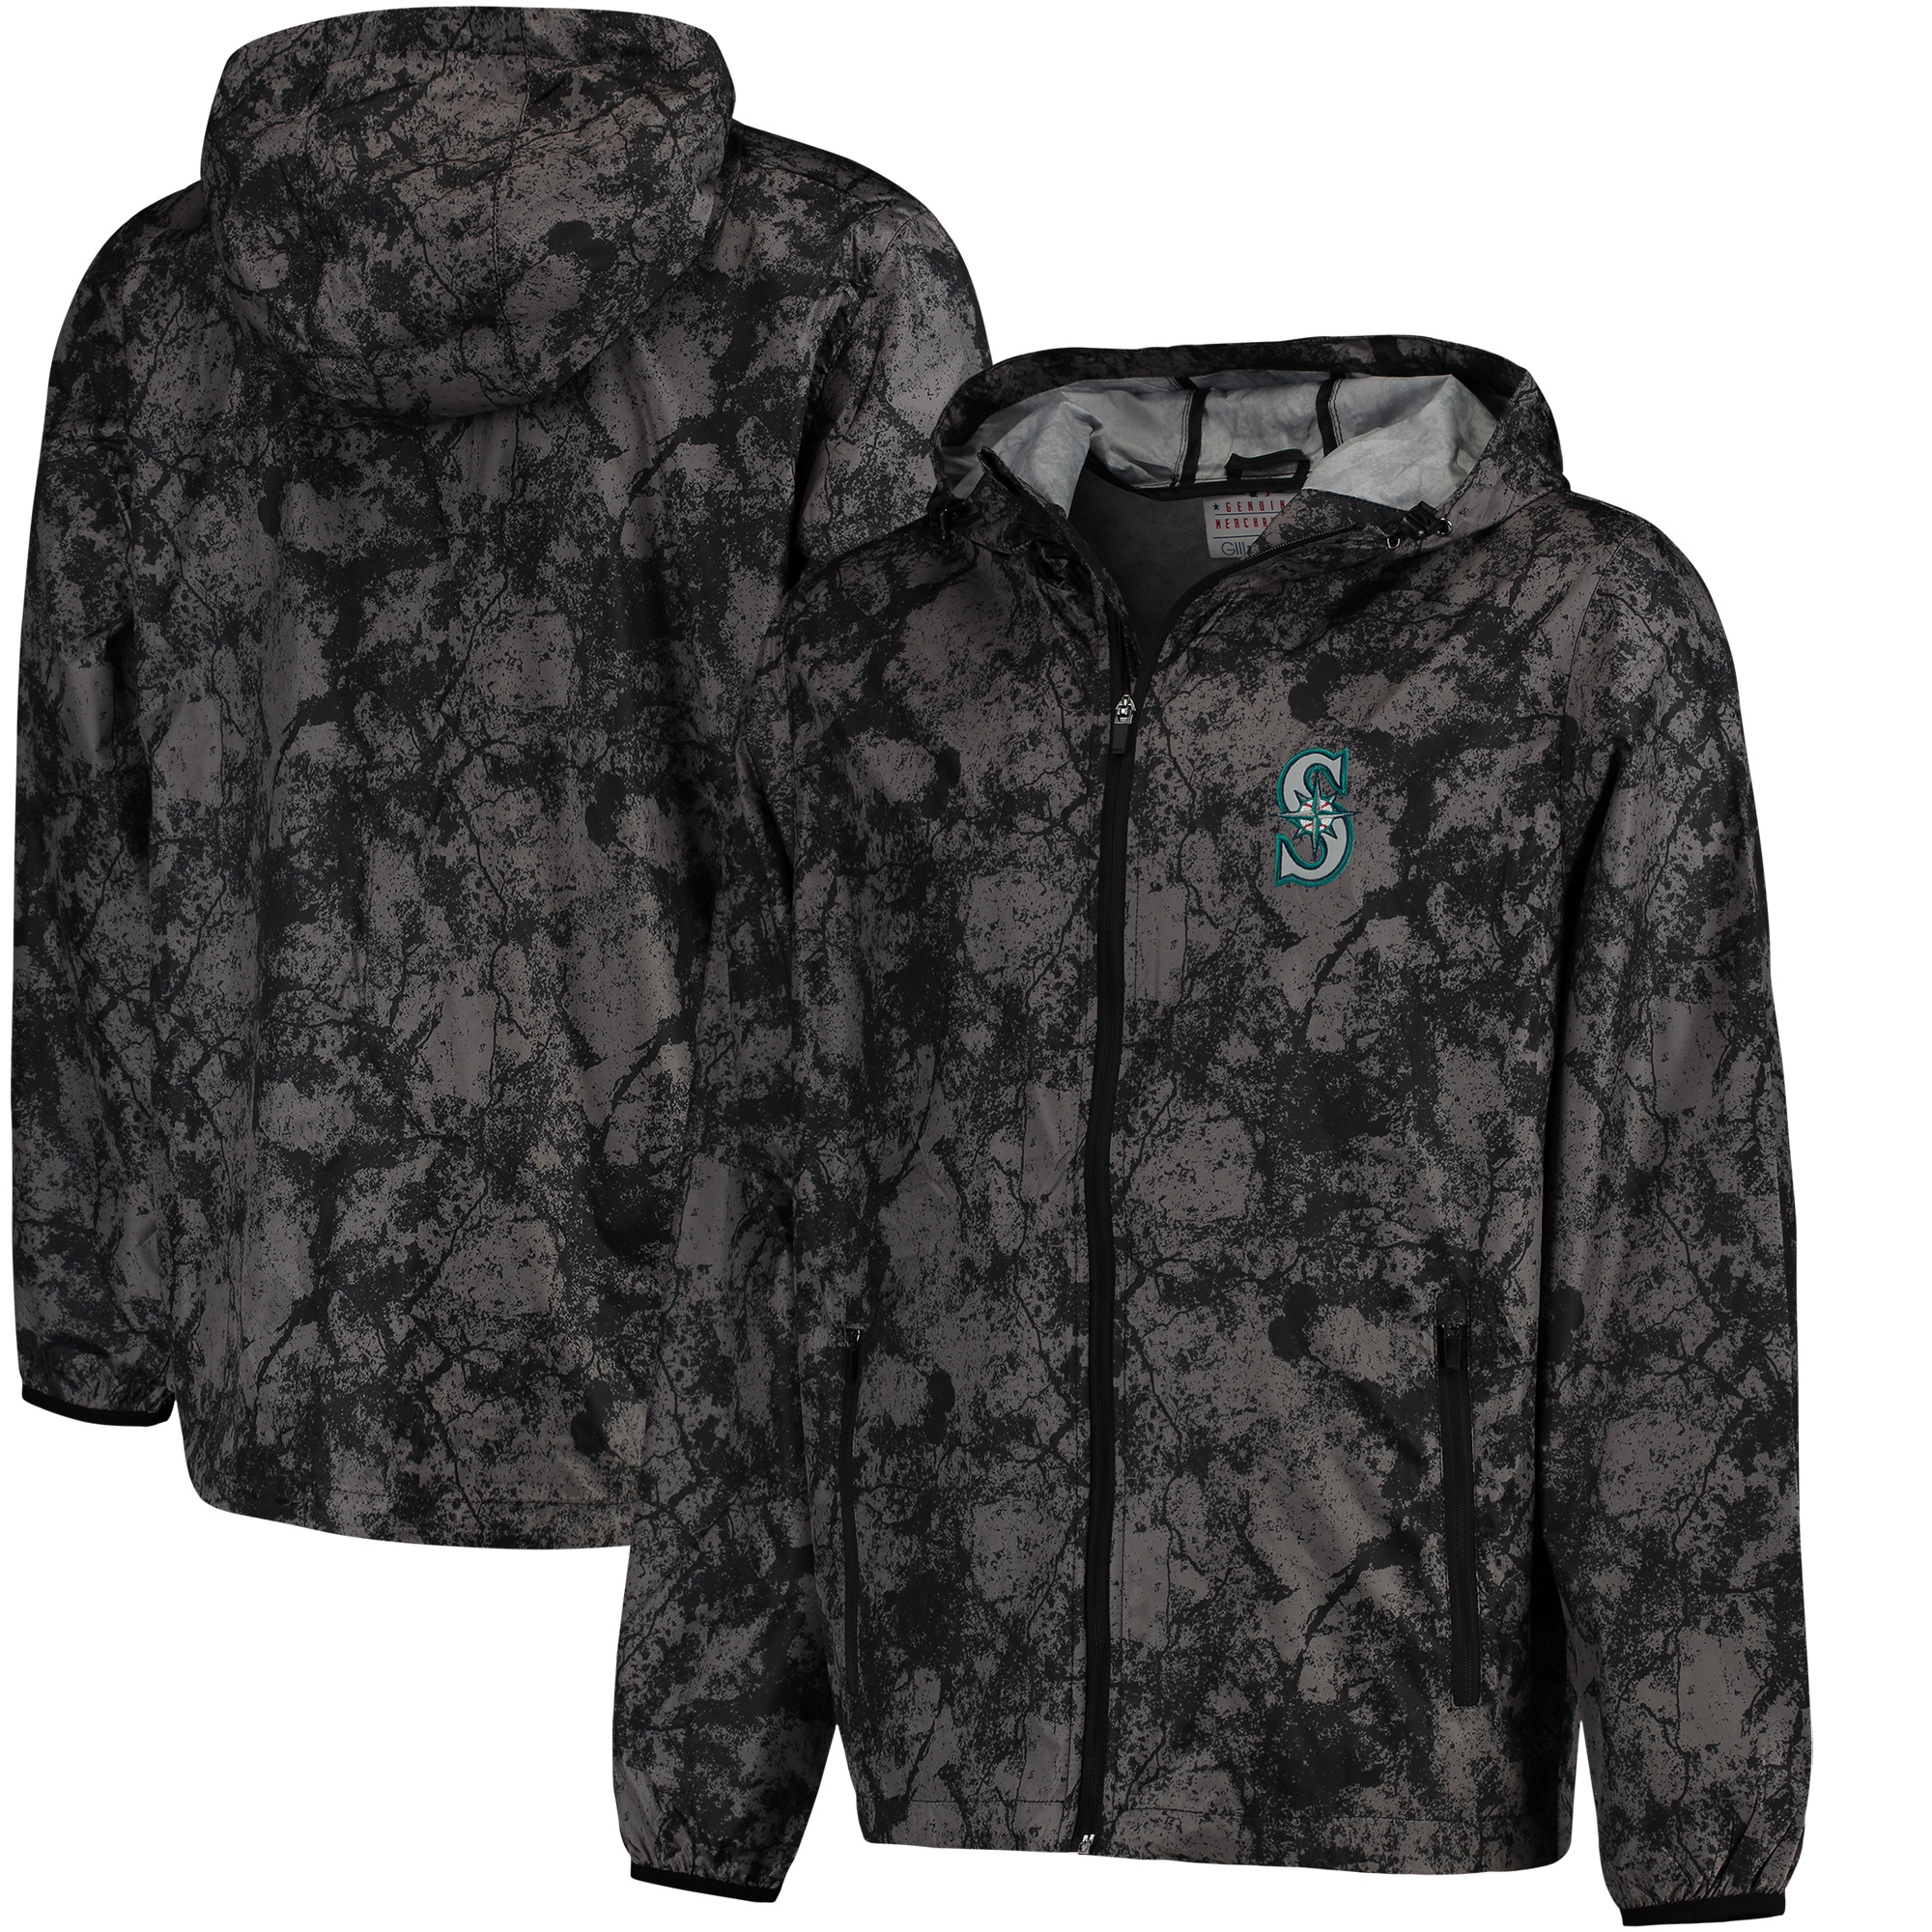 Seattle Mariners G-III Sports by Carl Banks Wind Chill Lightweight Full-Zip Jacket - Charcoal